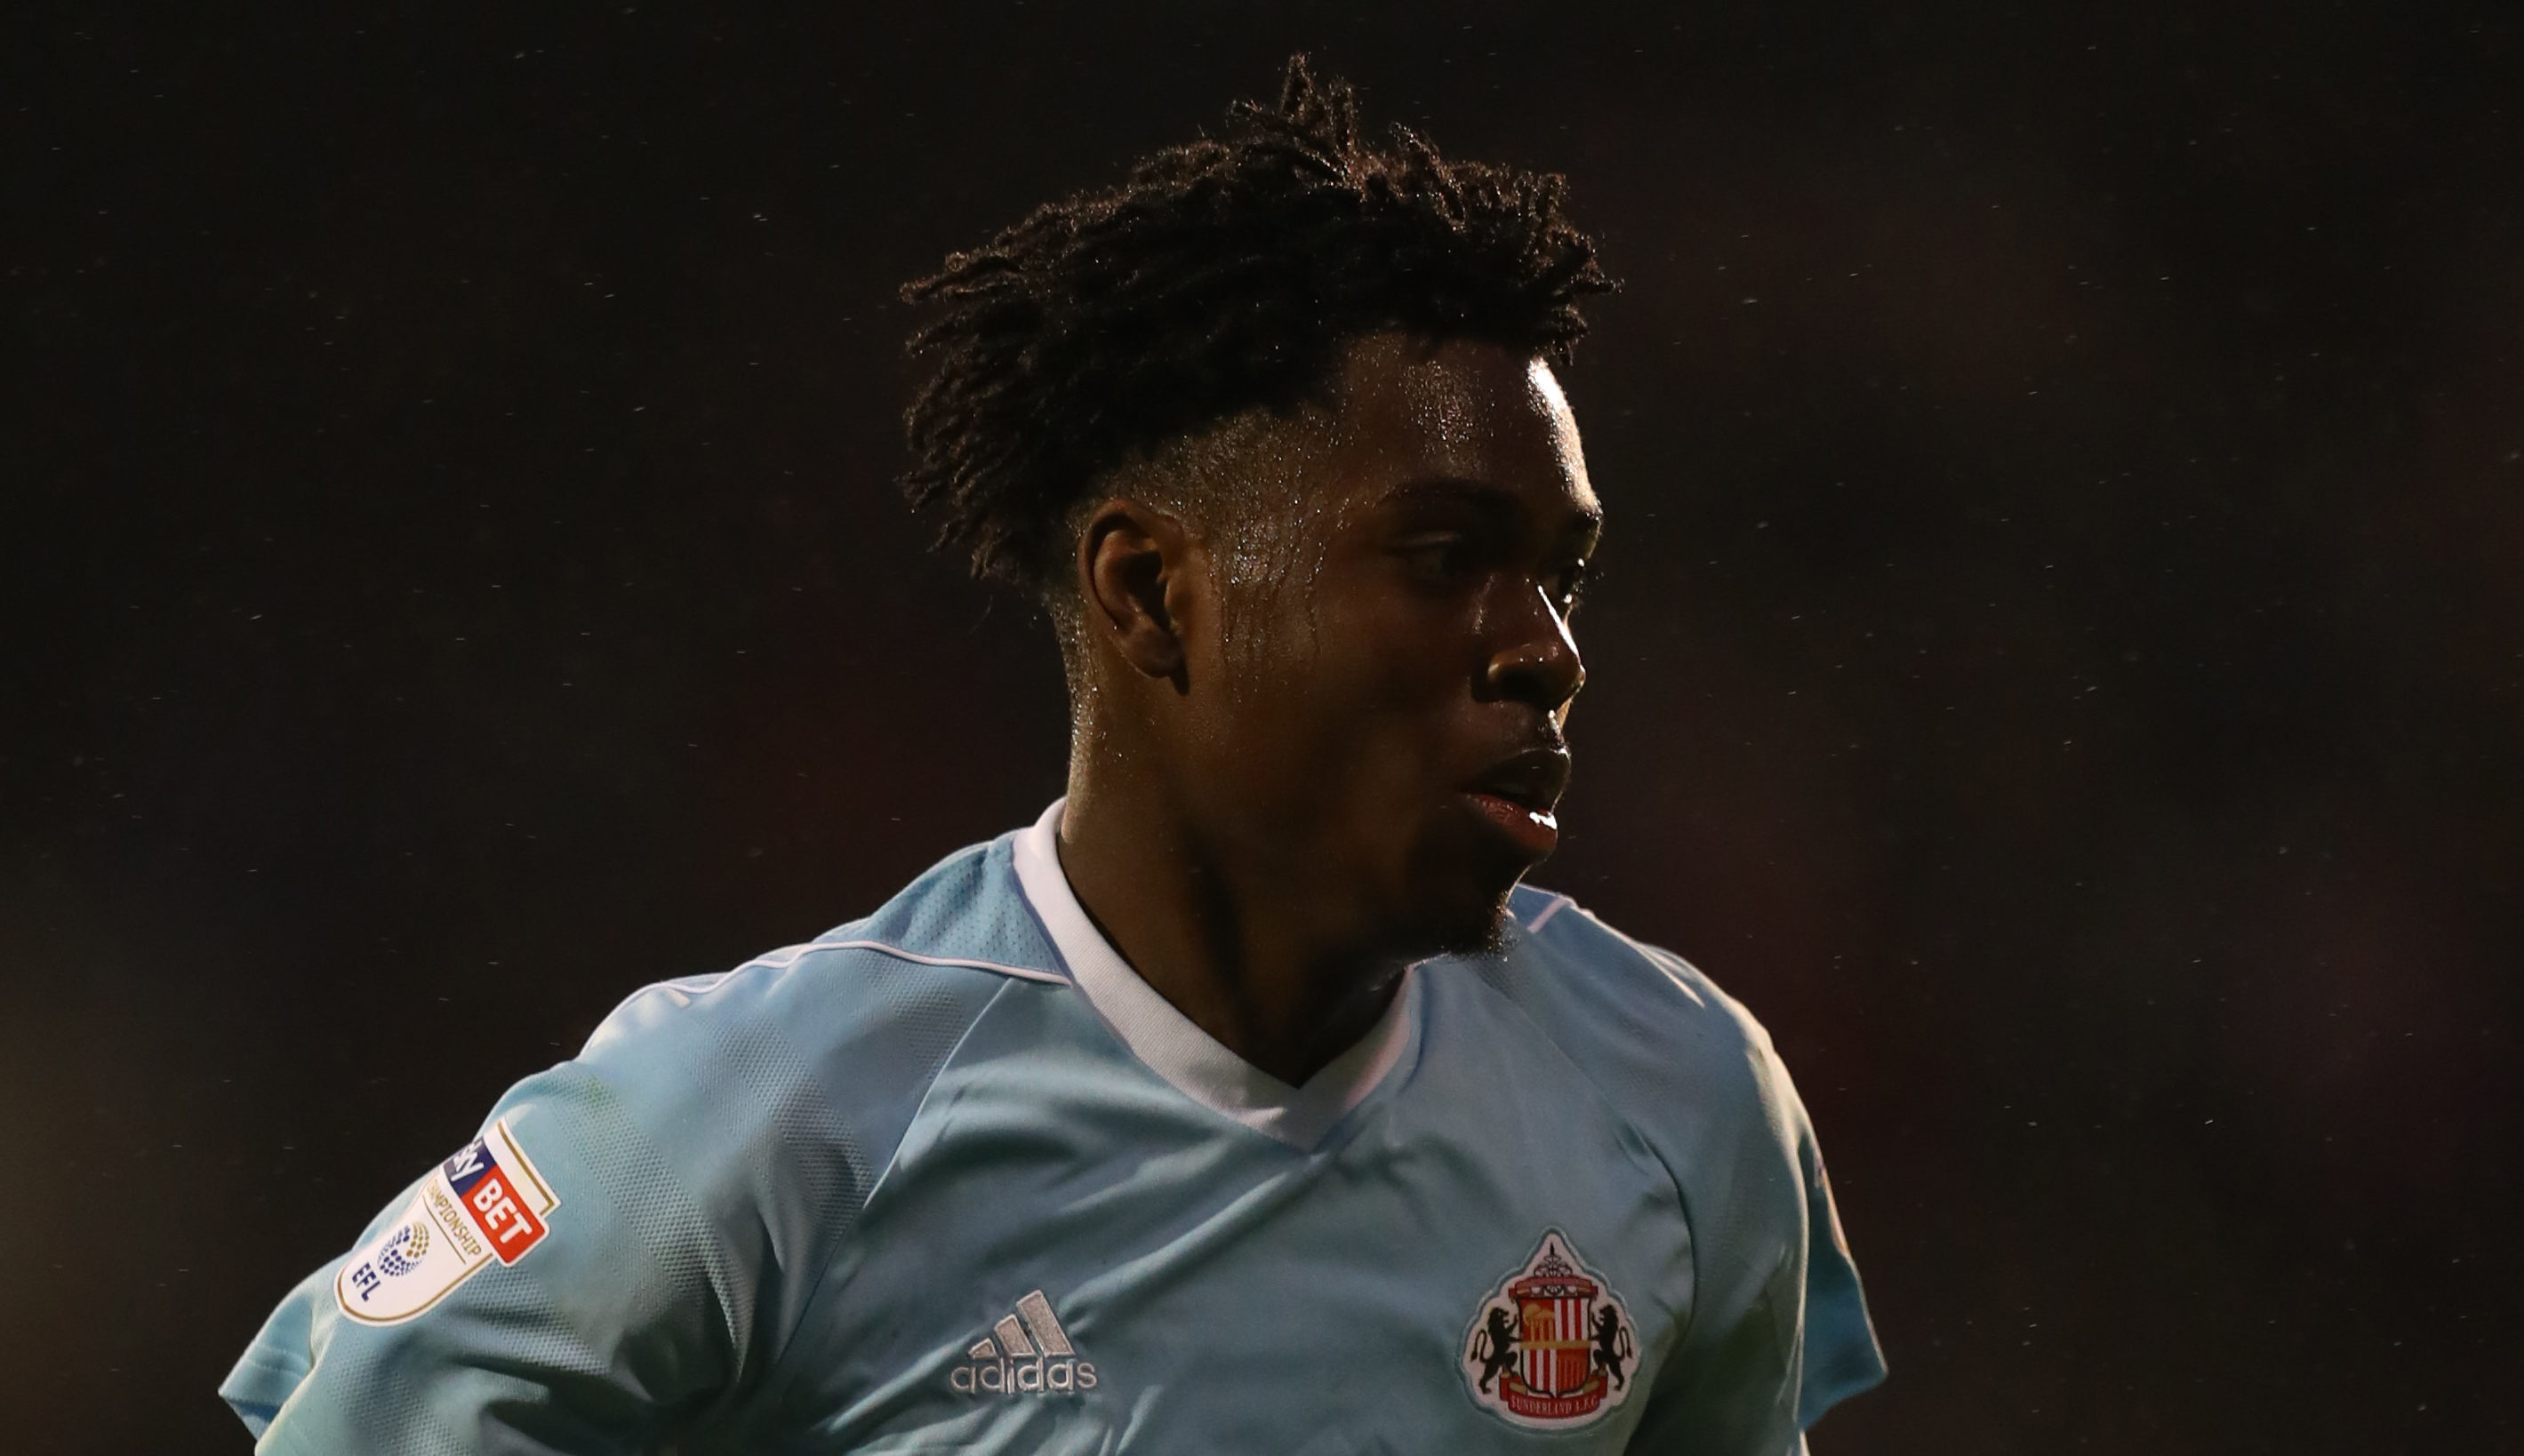 Ovie Ejaria on loan at Sunderland (Catherine Ivill/Getty Images)